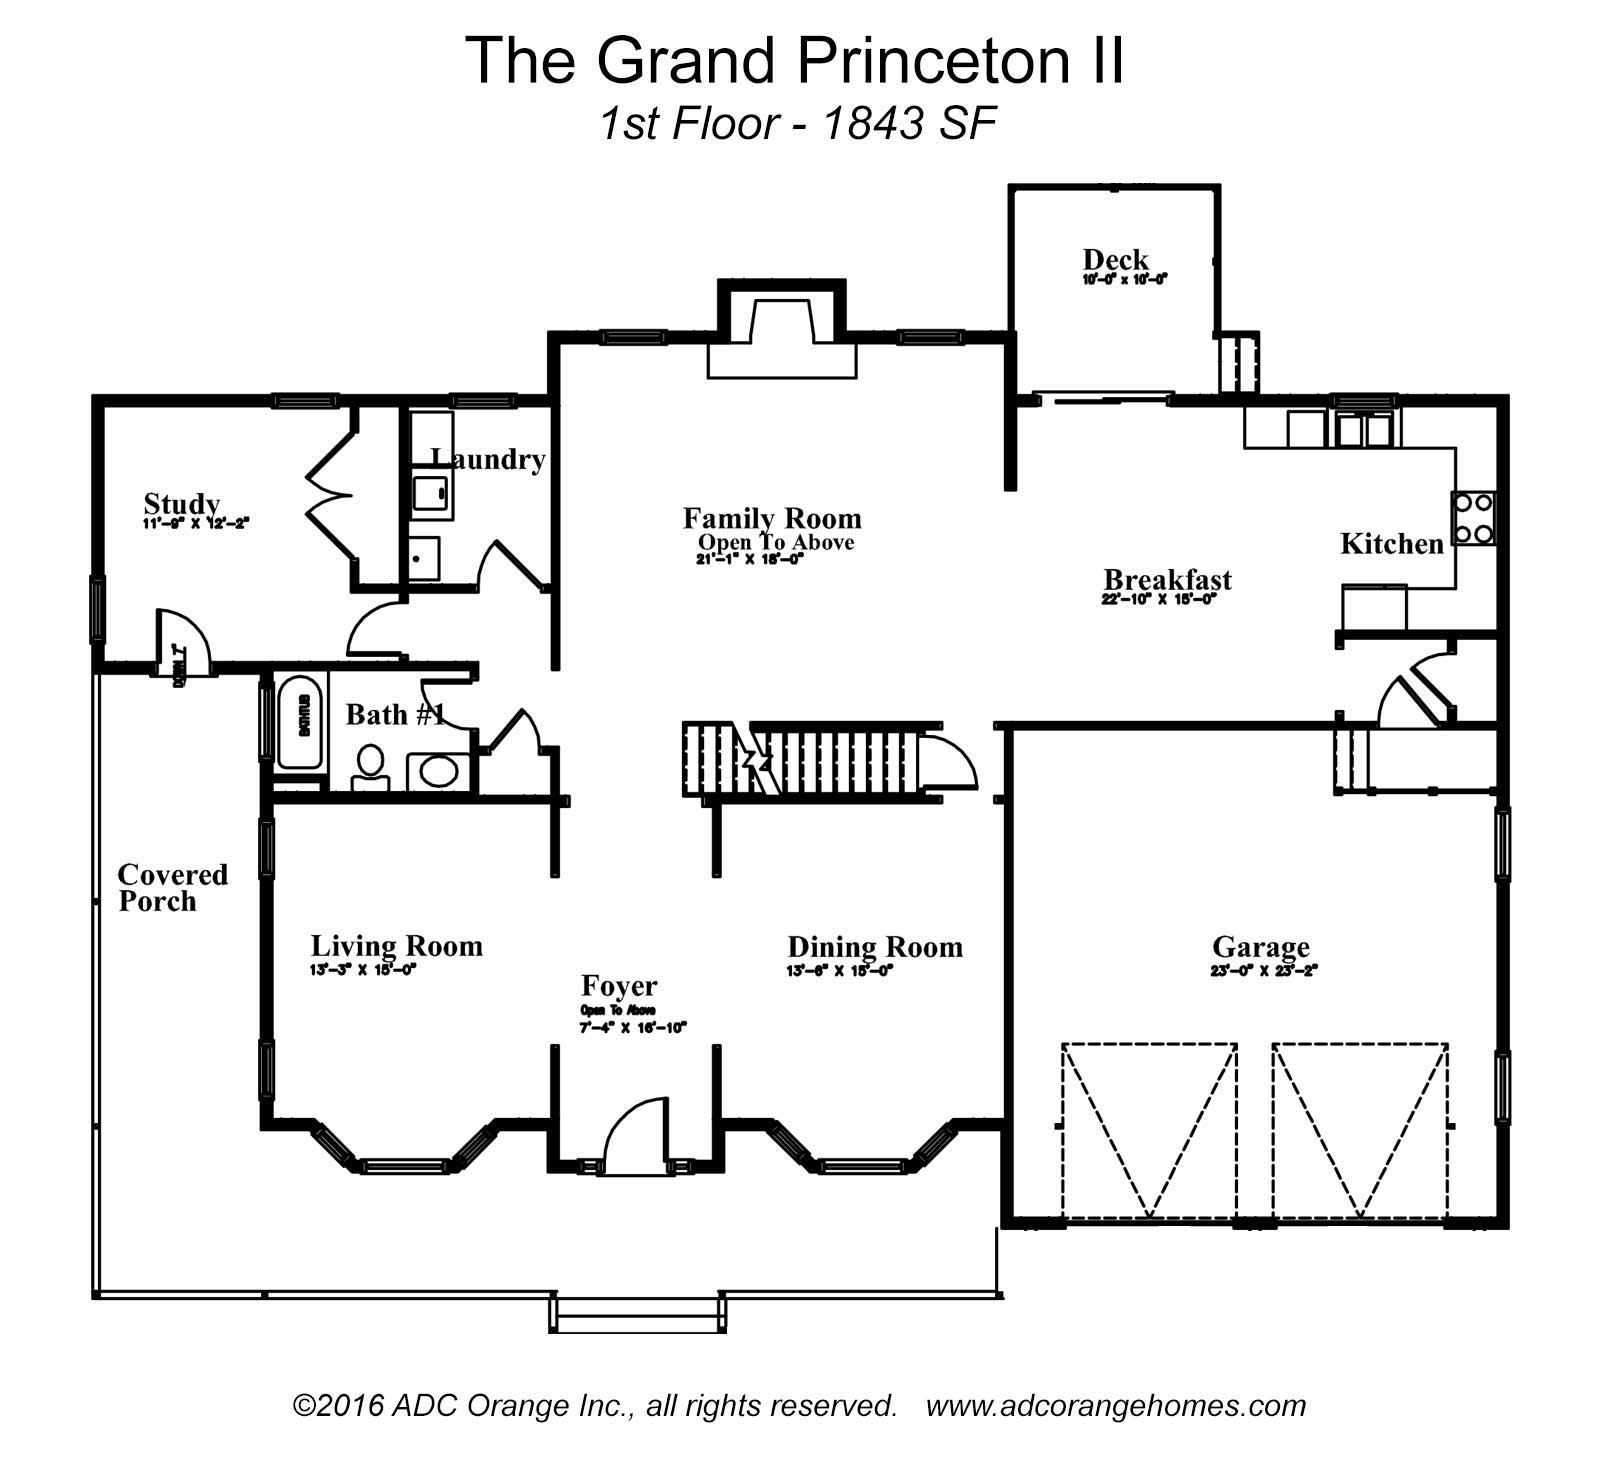 1st Floor Plan for Grand Princeton II - New Home in Orange County, New York